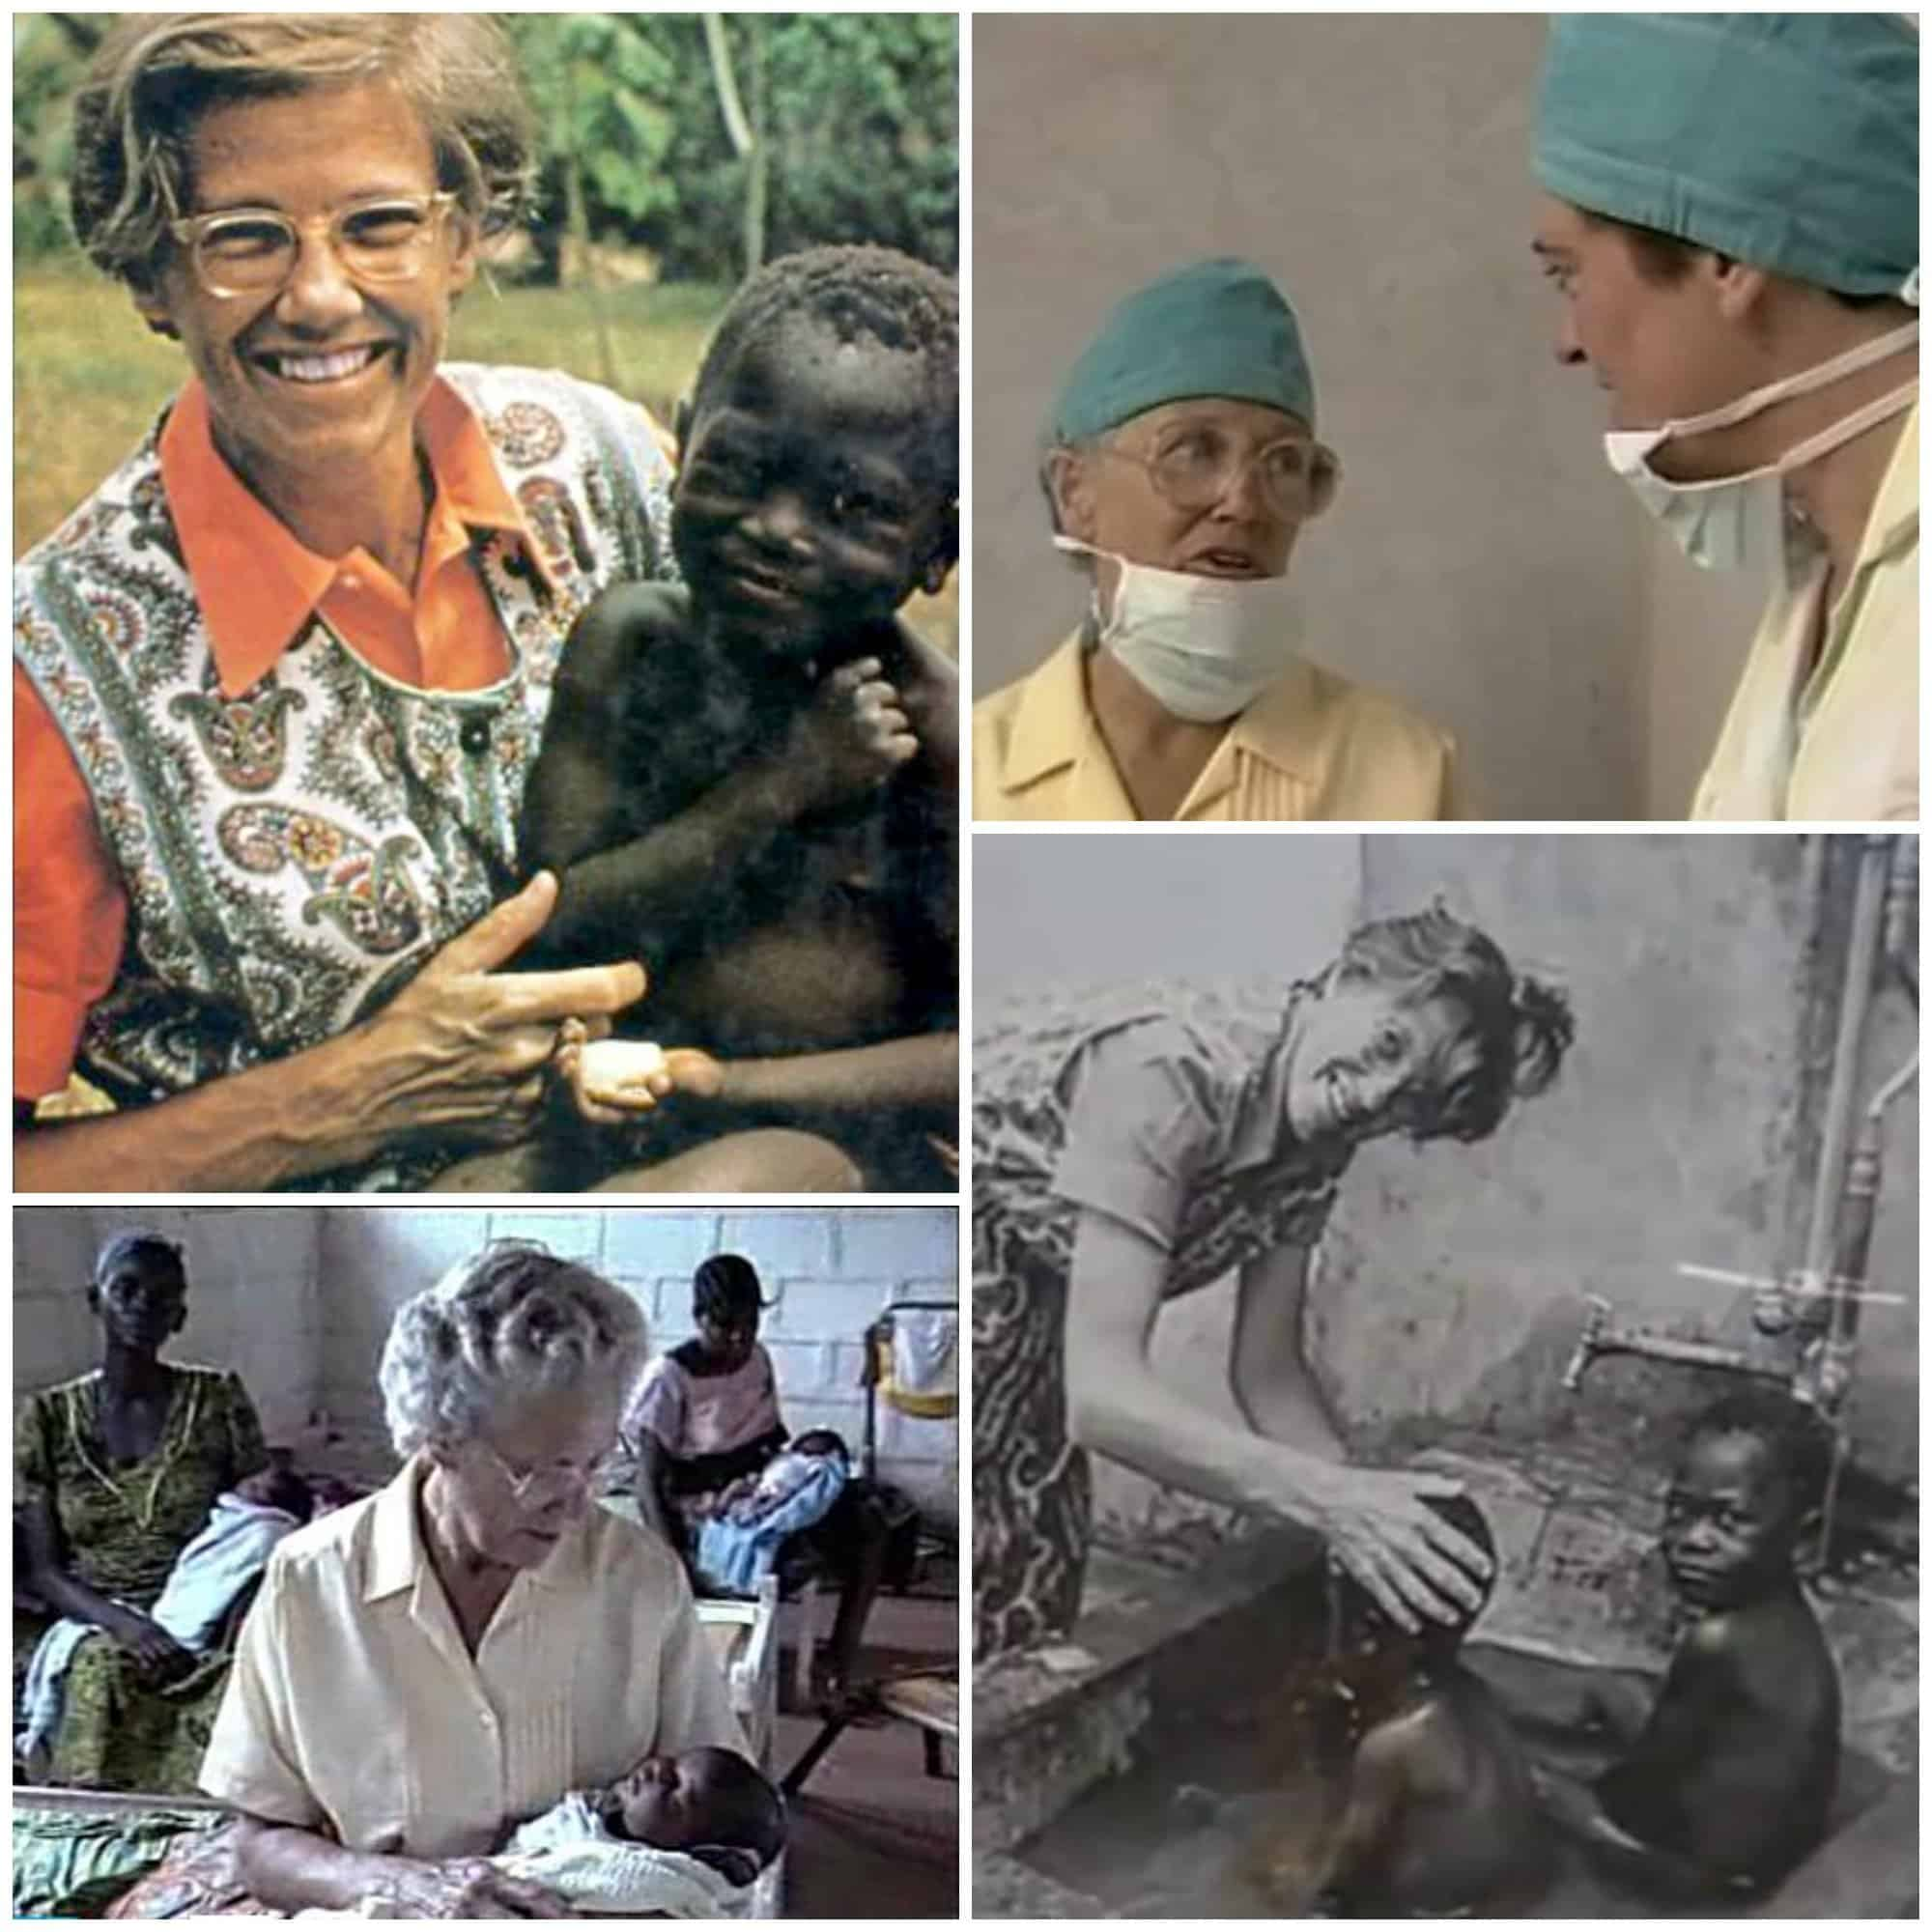 Helen Roseveare: Congo Missionary MD: Grace to Forgive Her Rapists. collage